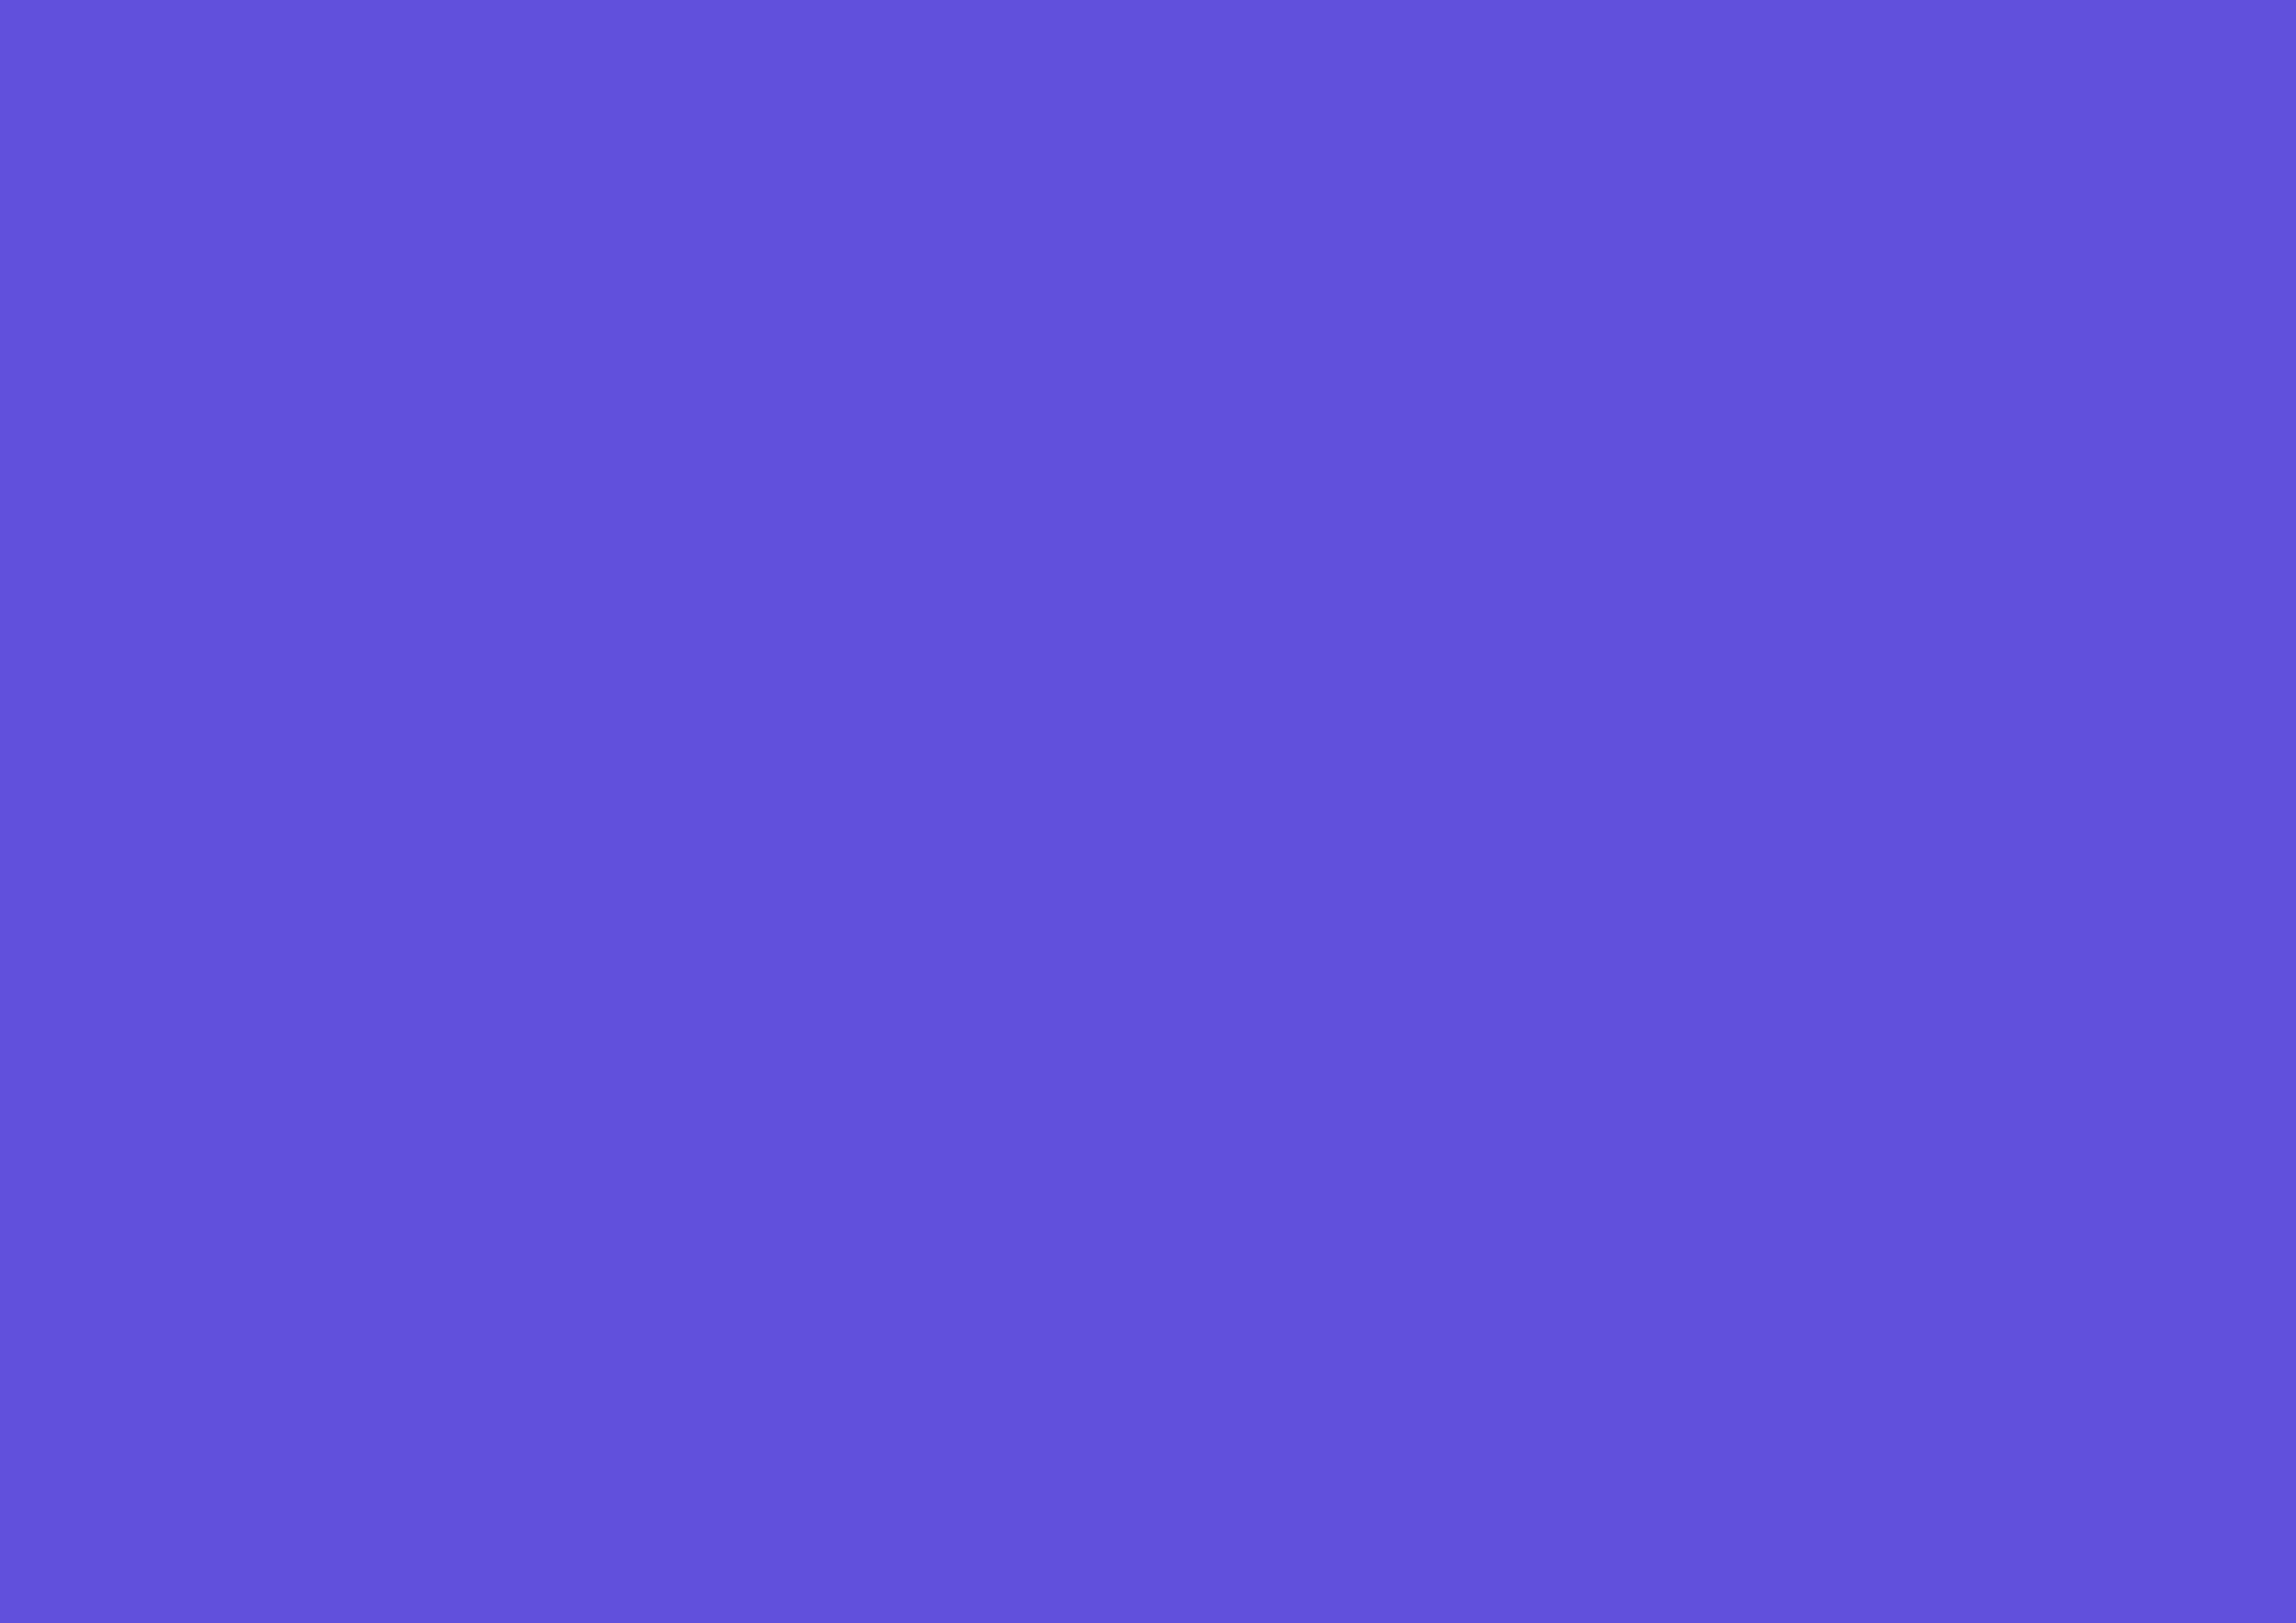 3508x2480 Majorelle Blue Solid Color Background